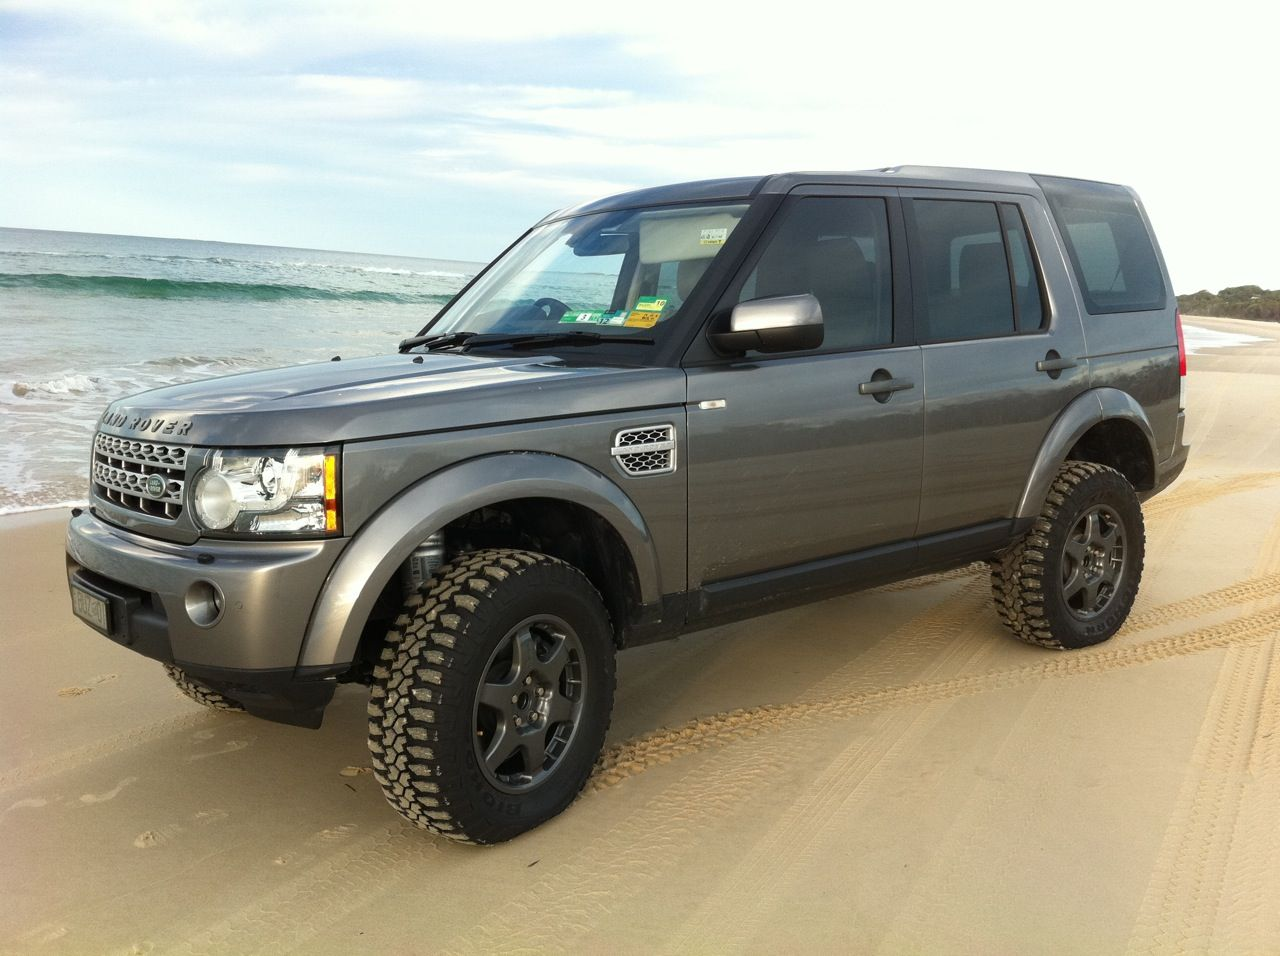 """Land Rover discovery 2 with a 4"""" lift with 285 x75 x16 wheels"""